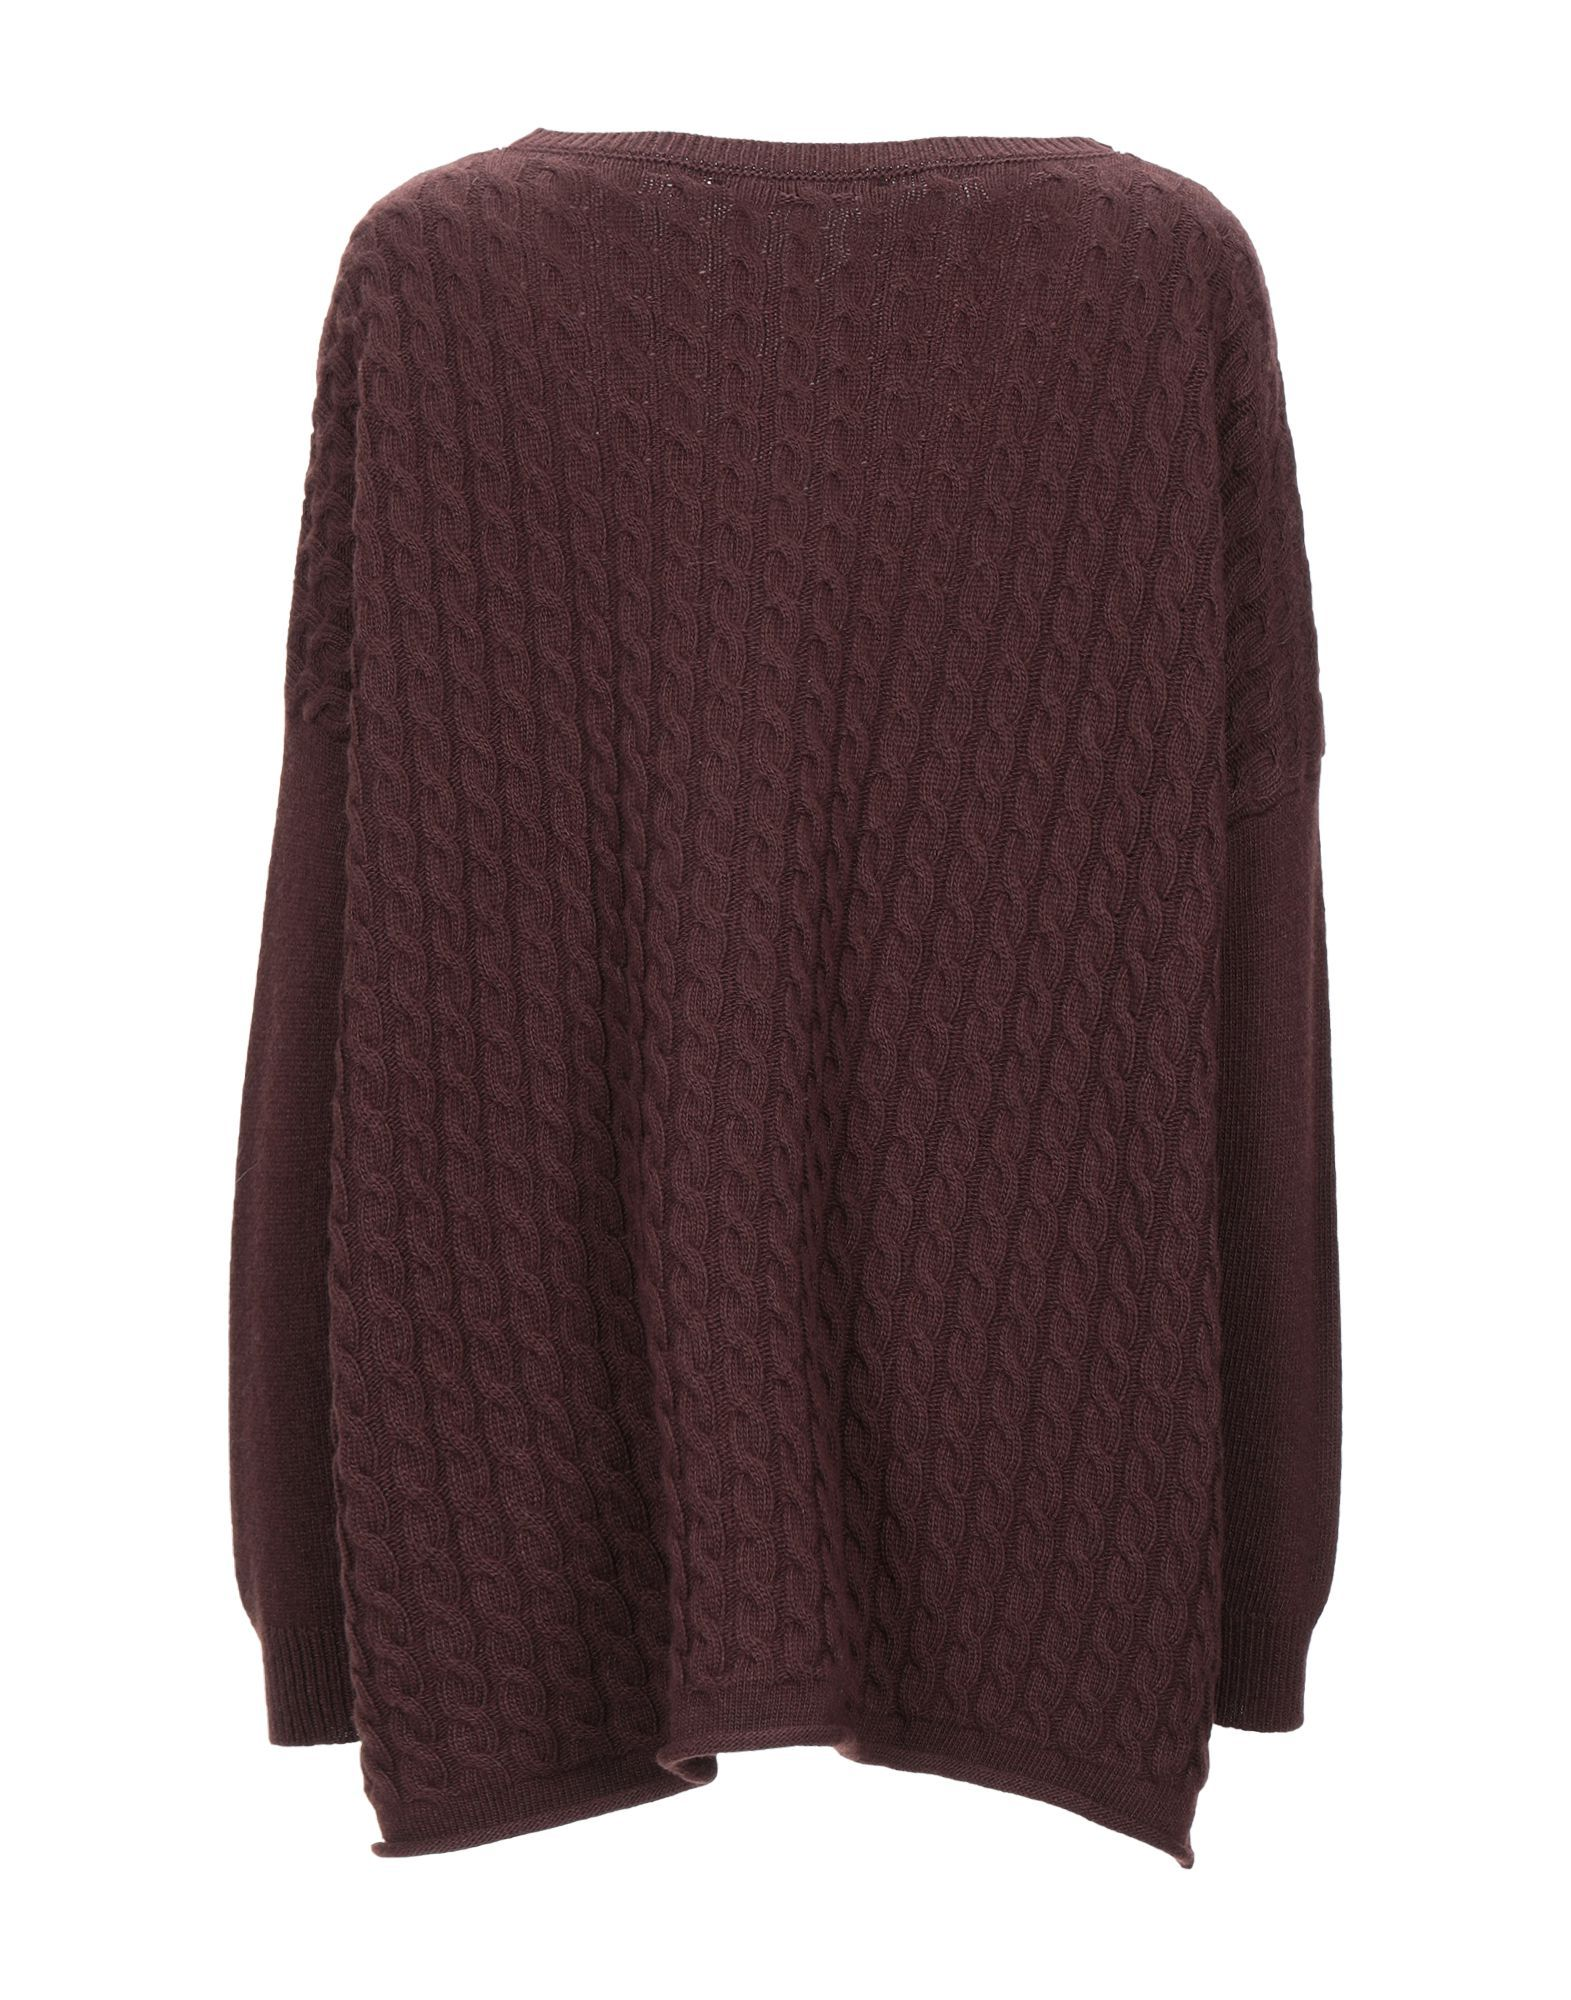 Messagerie Dark Brown Angora Cable Knit Jumper